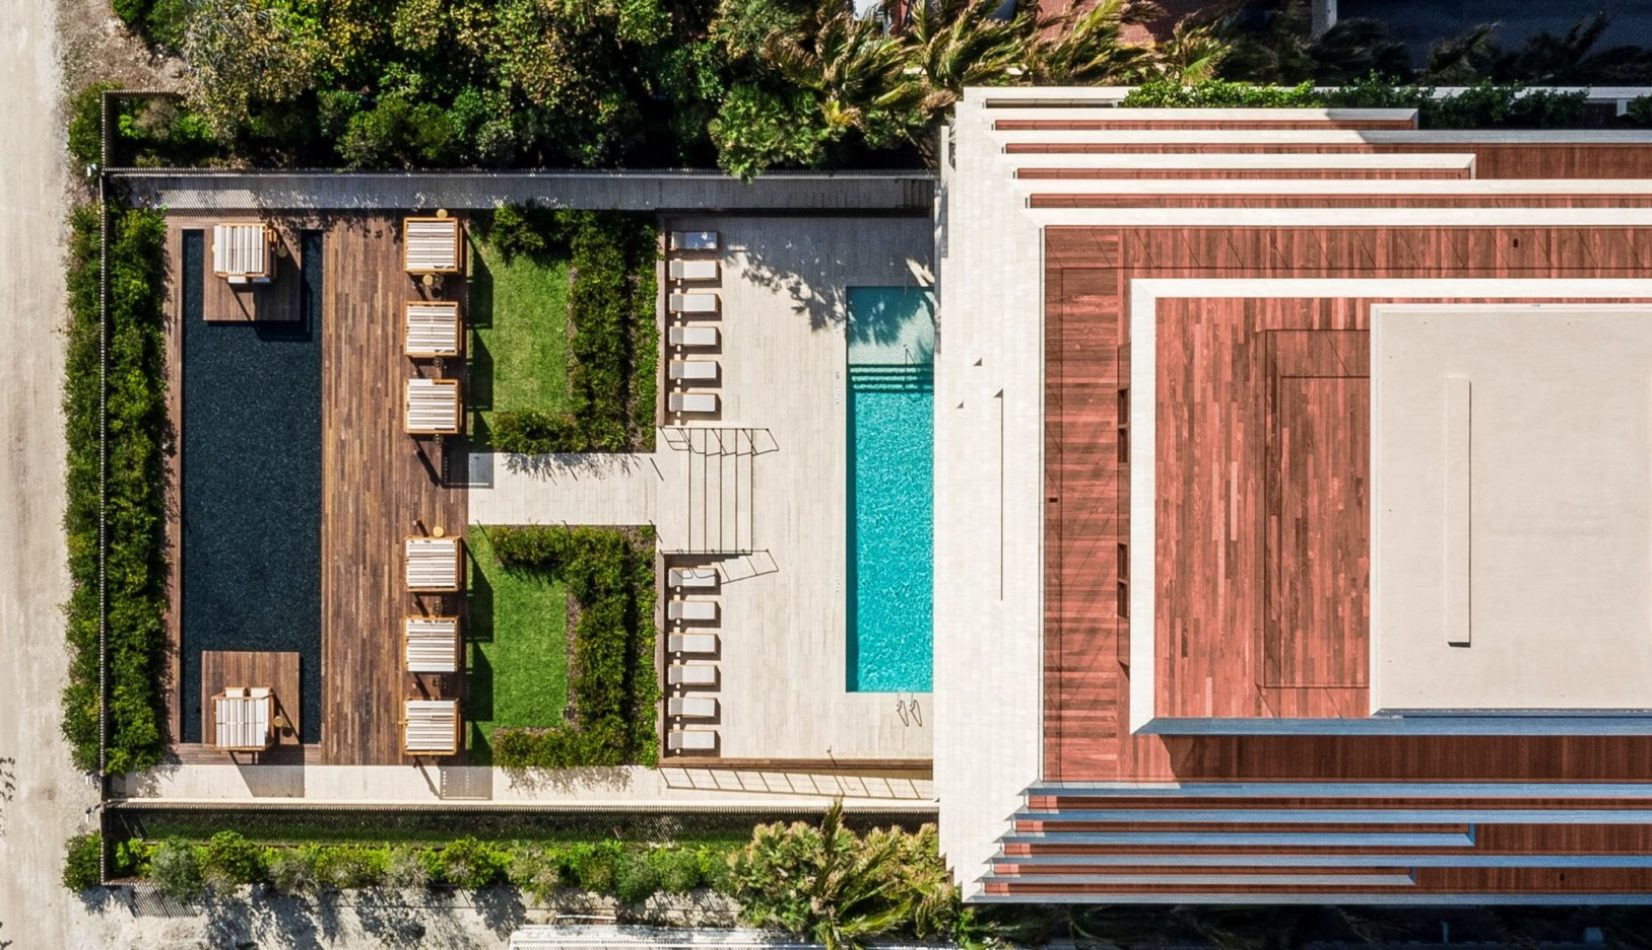 Exterior aerial view of Arte Surfside condominiums with oceanfront view. Has rooftop and front entrance pool.